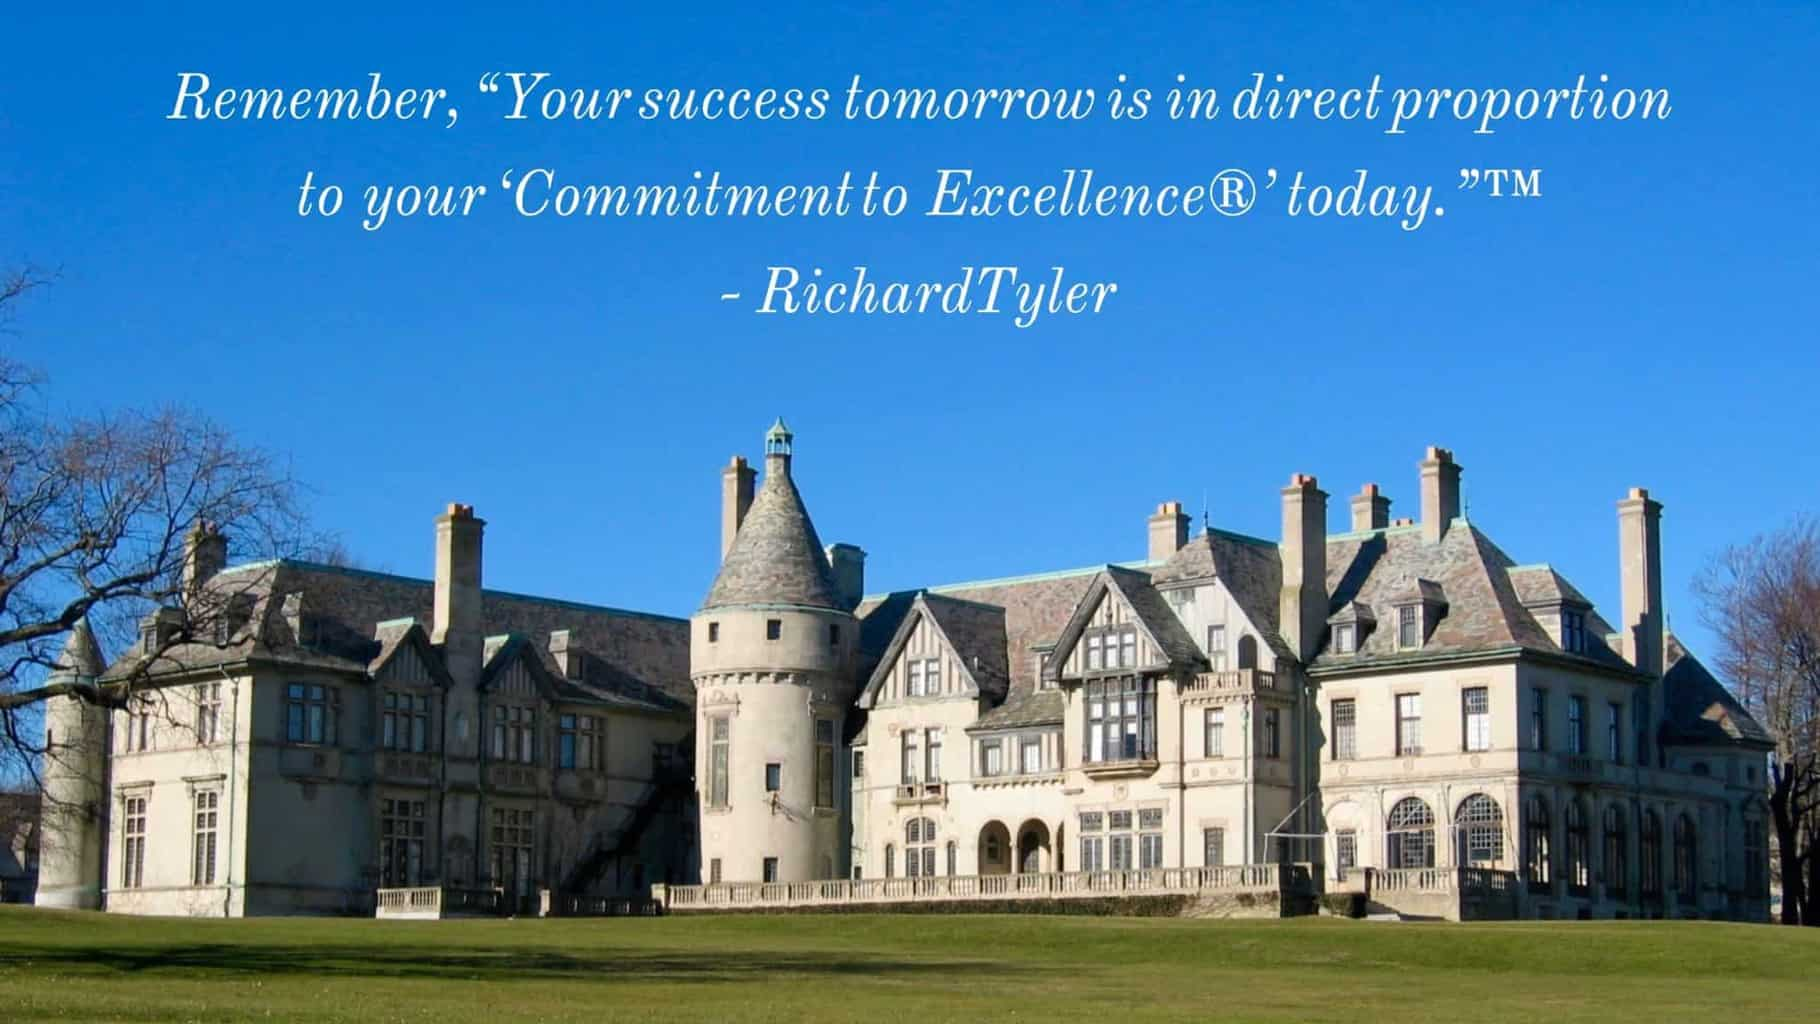 """Newport Rhode Island - Remember, """"Your success tomorrow is in direct proportion to your 'Commitment to Excellence®' today.""""™ - Richard Tyler - color version"""